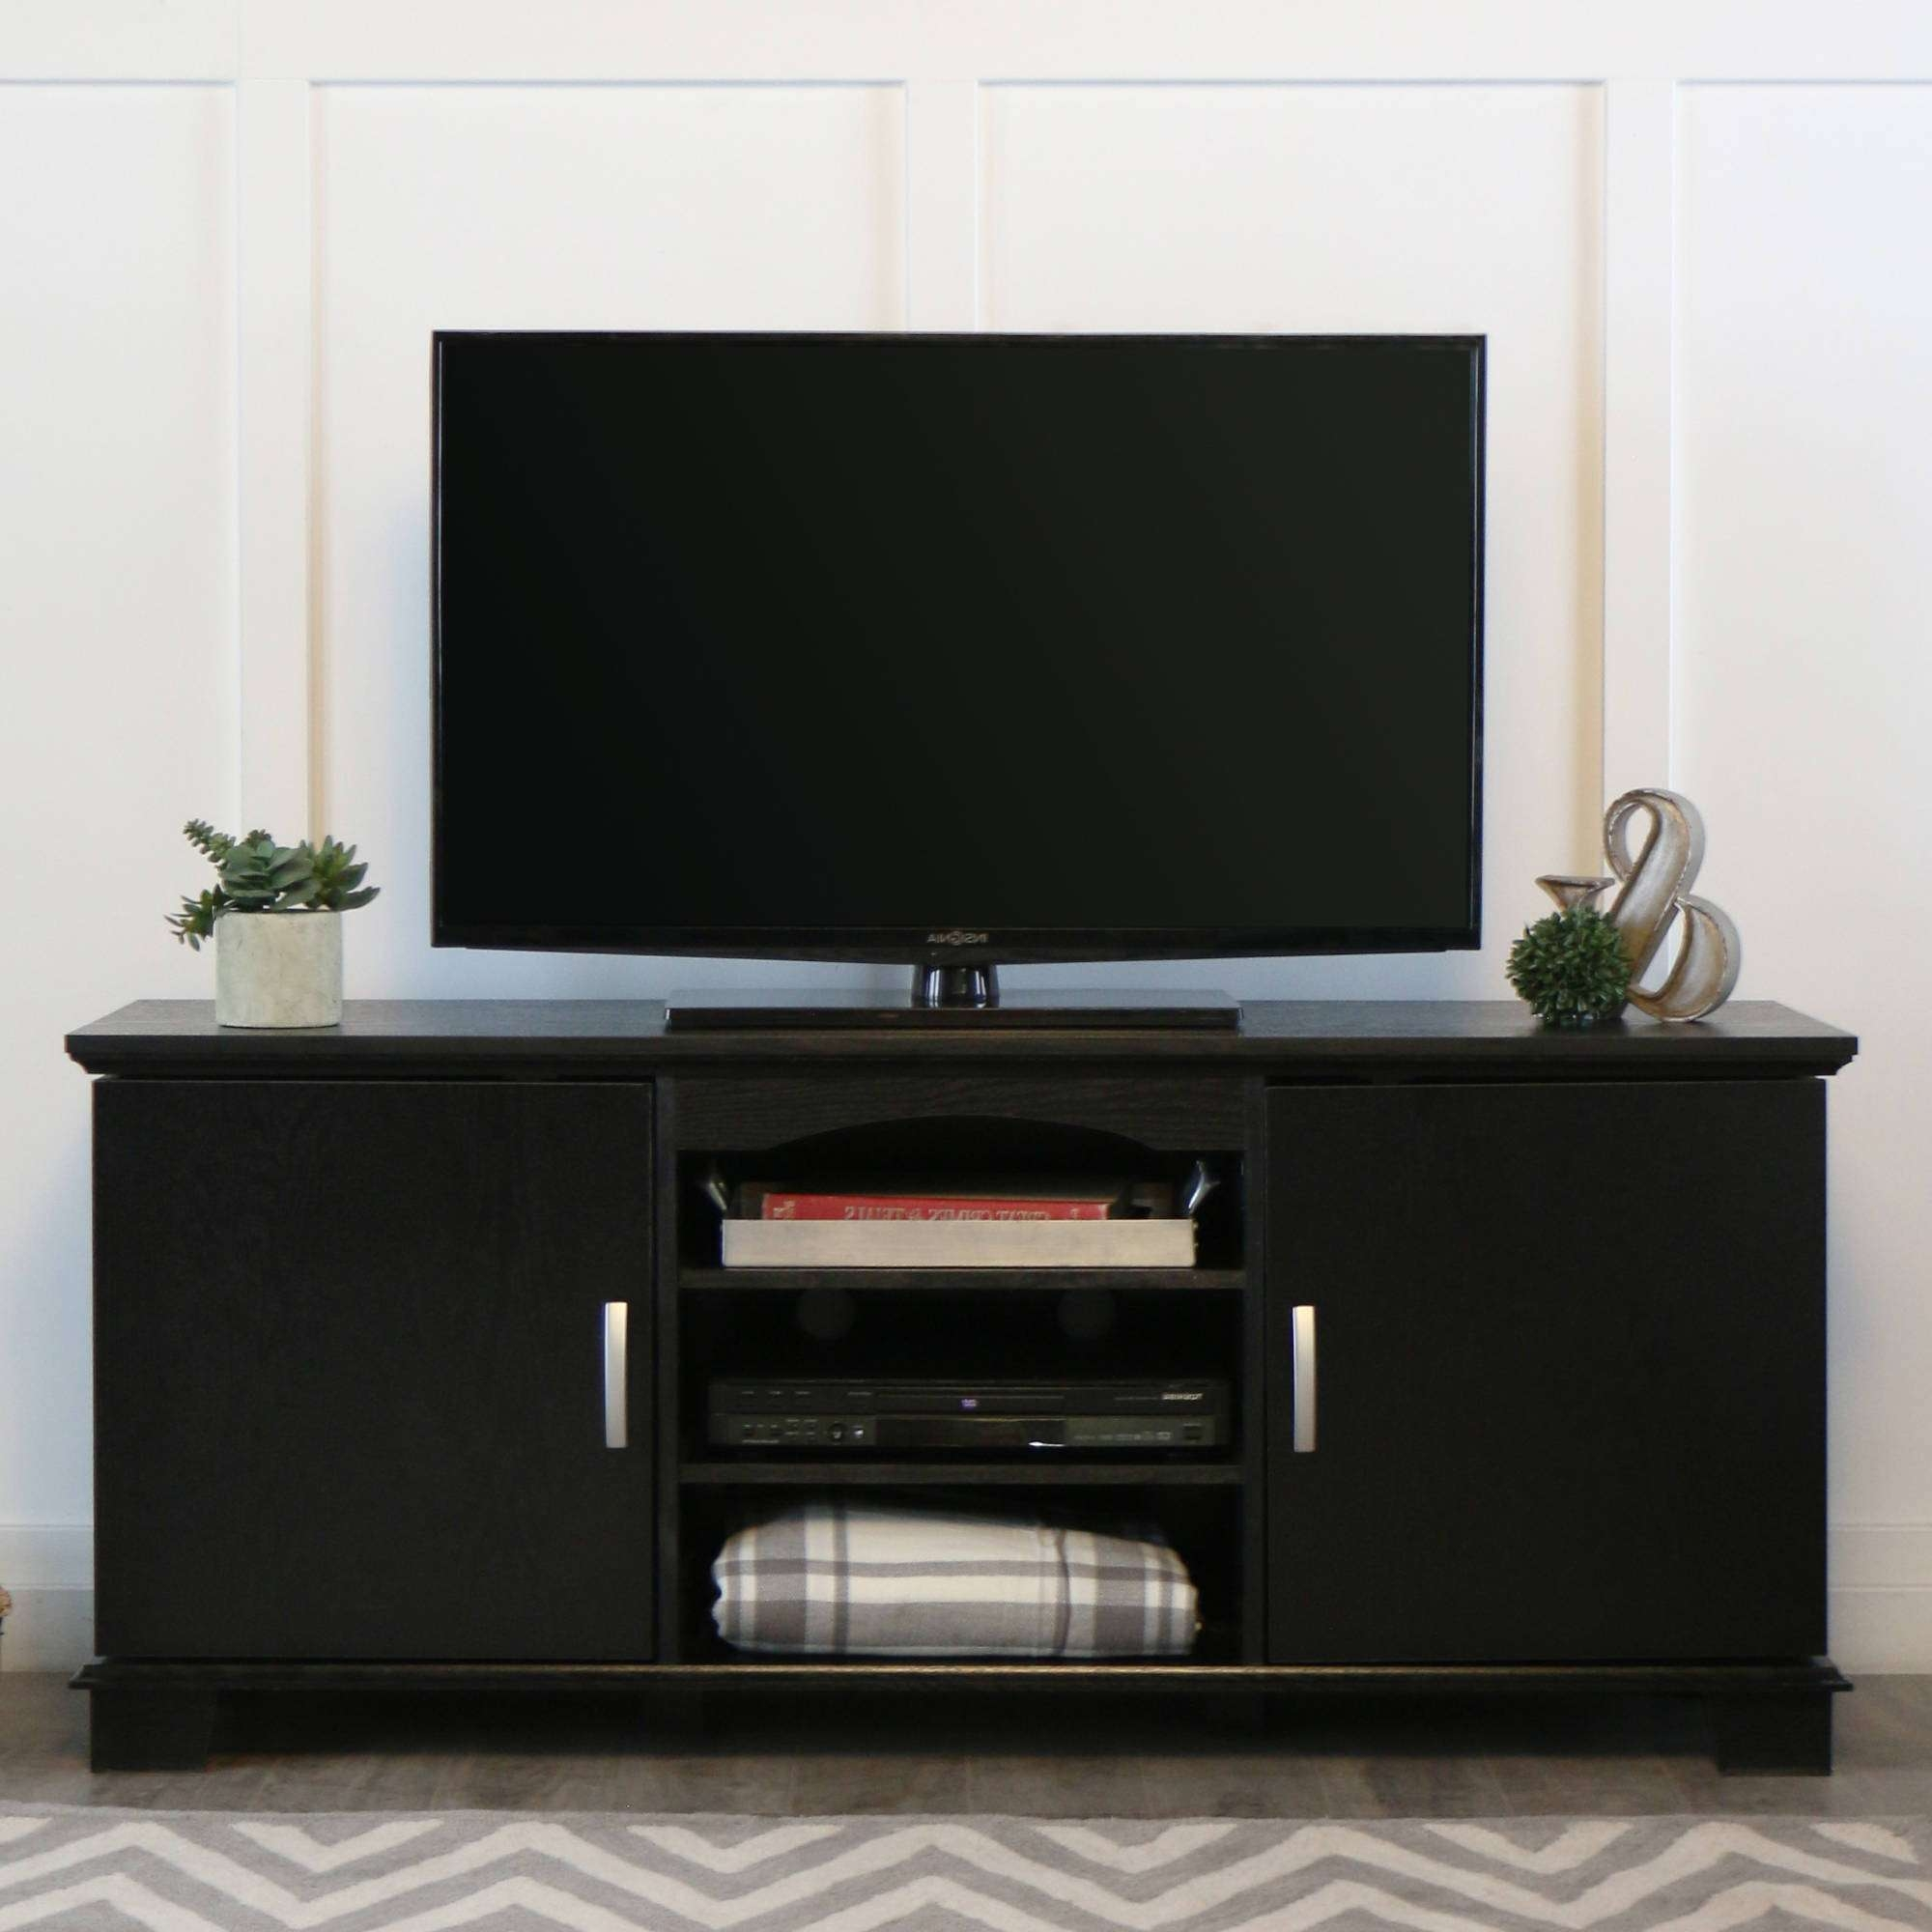 "Walker Edison Black Tv Stand For Tvs Up To 65"", Multiple Colors Throughout Tv Stands For Large Tvs (View 15 of 15)"